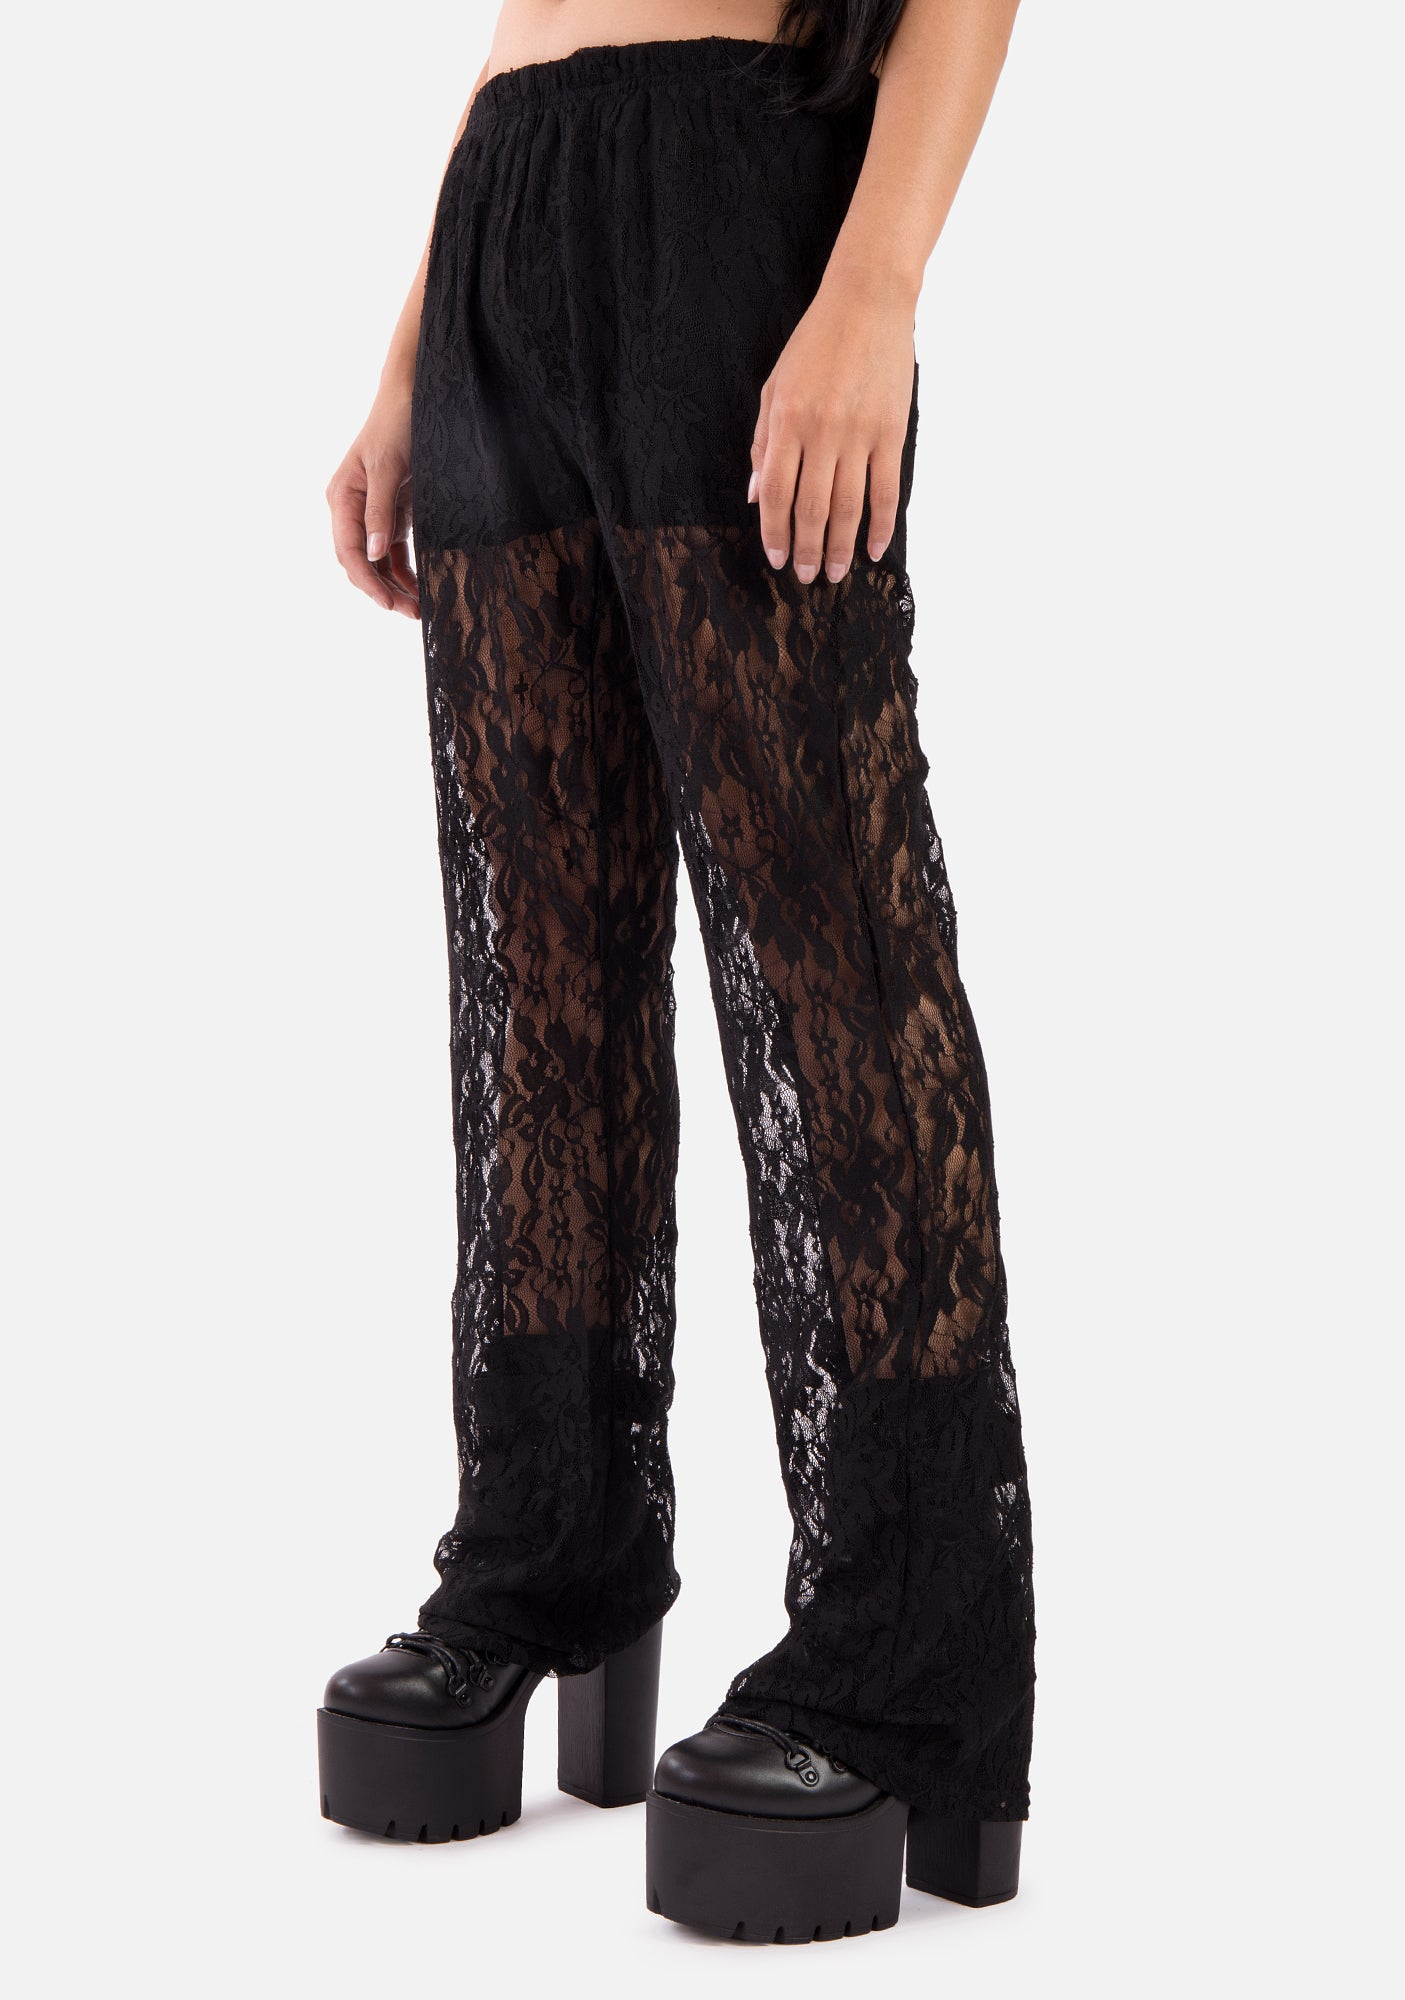 2019 hot sale top quality official images Widow Sheer Pants